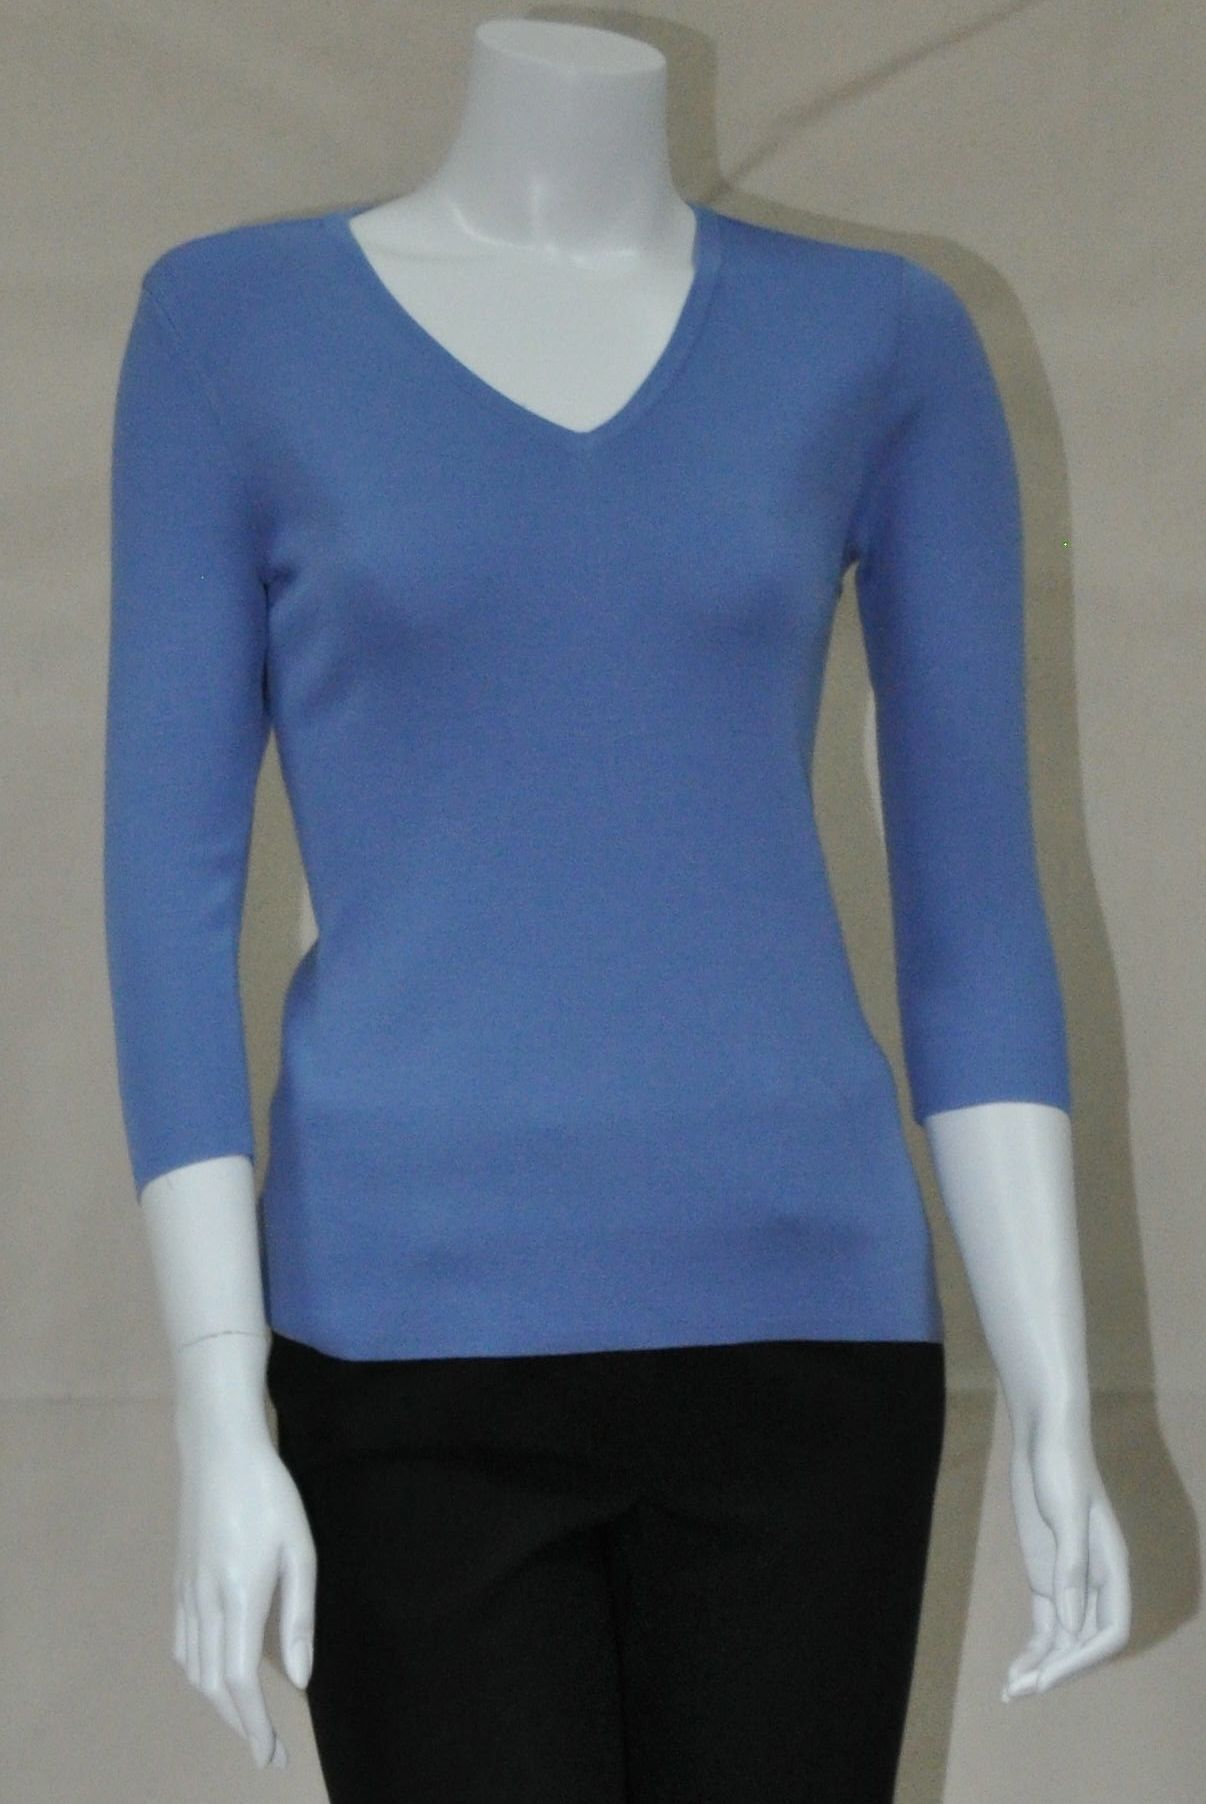 LH601 - NE - Ladies V Neck 3/4 Length Sleeve Knit